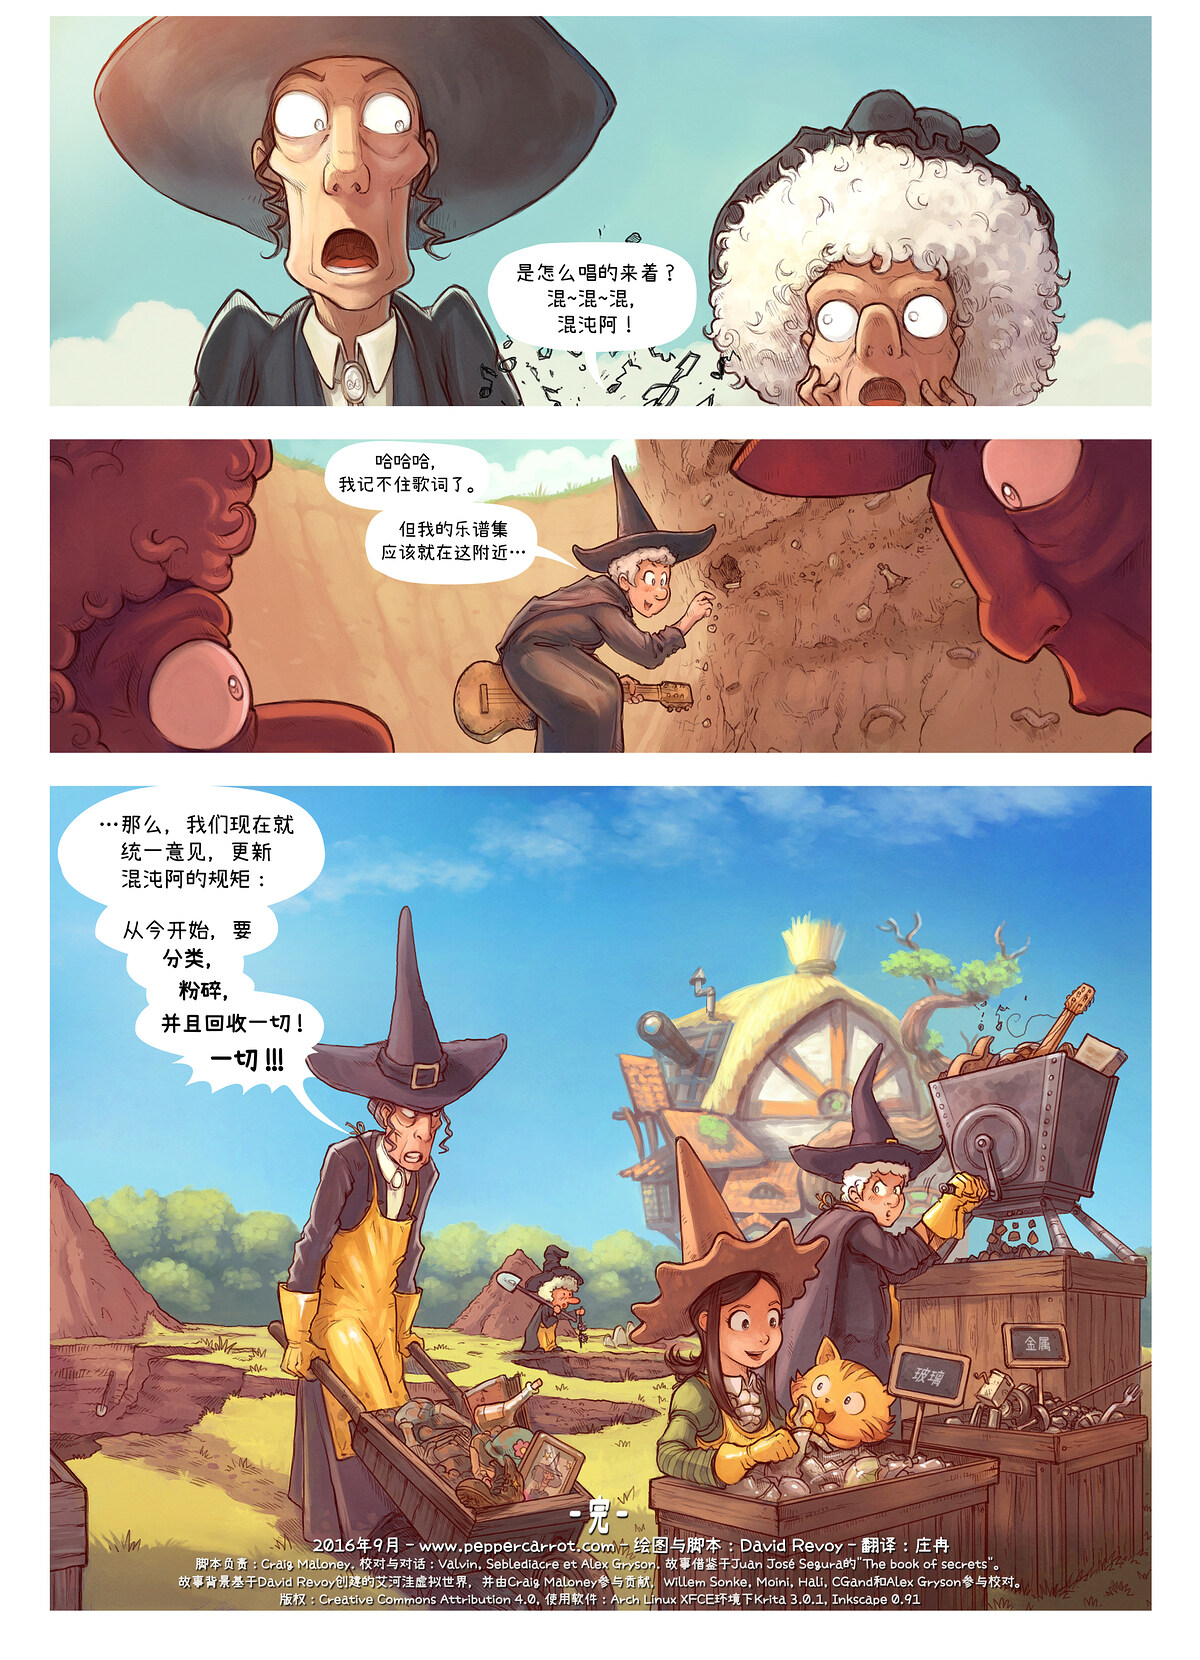 A webcomic page of Pepper&Carrot, 漫画全集 19 [cn], 页面 7